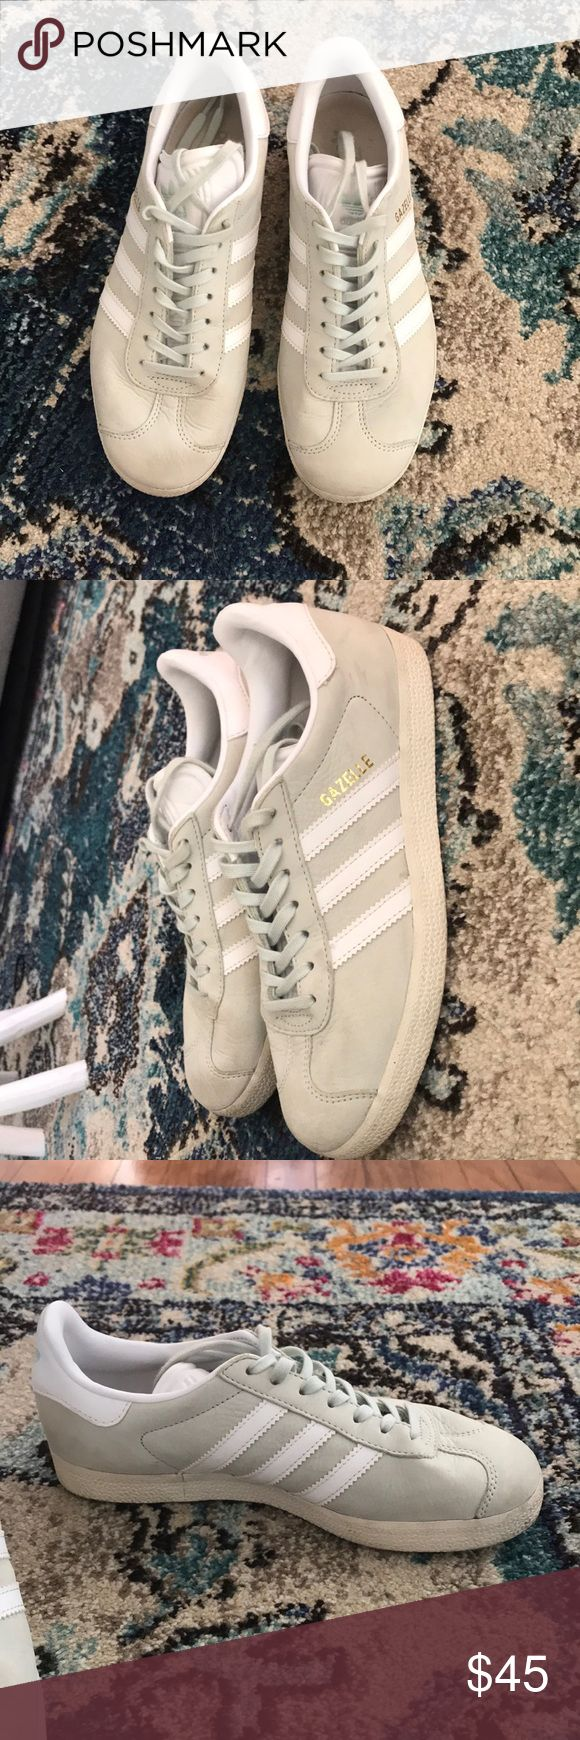 Adidas Gazelle Sneakers Gazelle sneakers in Linen Green! Worn a few times, but a half size too big for me. I think they look very cute with jeans and tops as well as sun dresses and skirts! adidas Shoes Sneakers